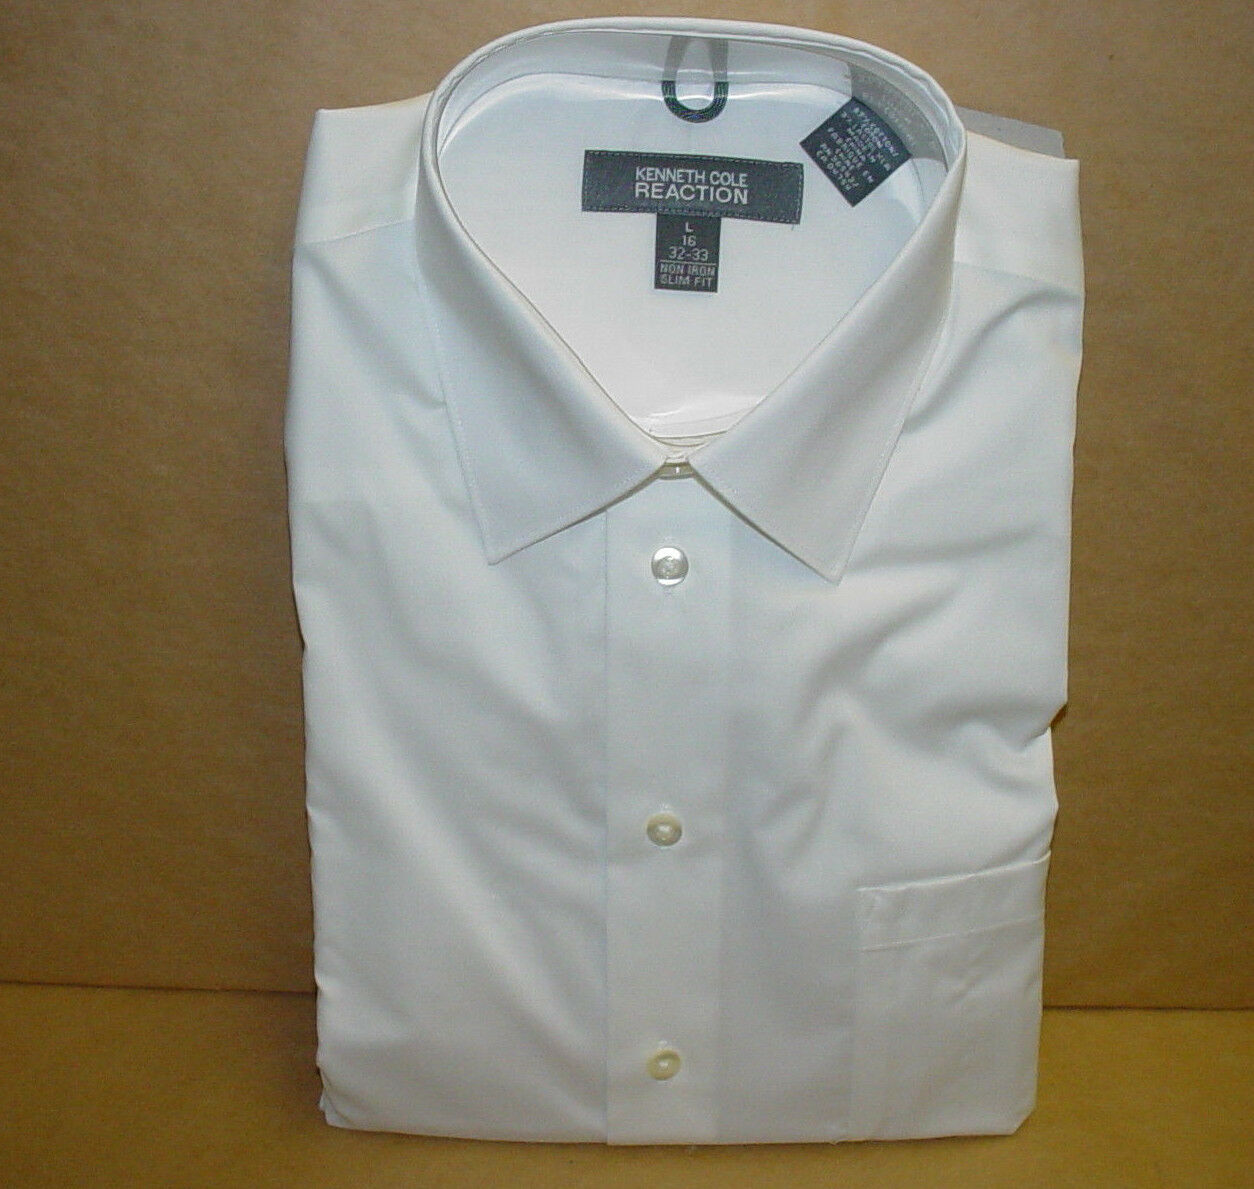 NEW KENNETH COLE REACTION LONG SLEEVE DRESS SHIRT SLIM FIT FOR MEN'S LARGE